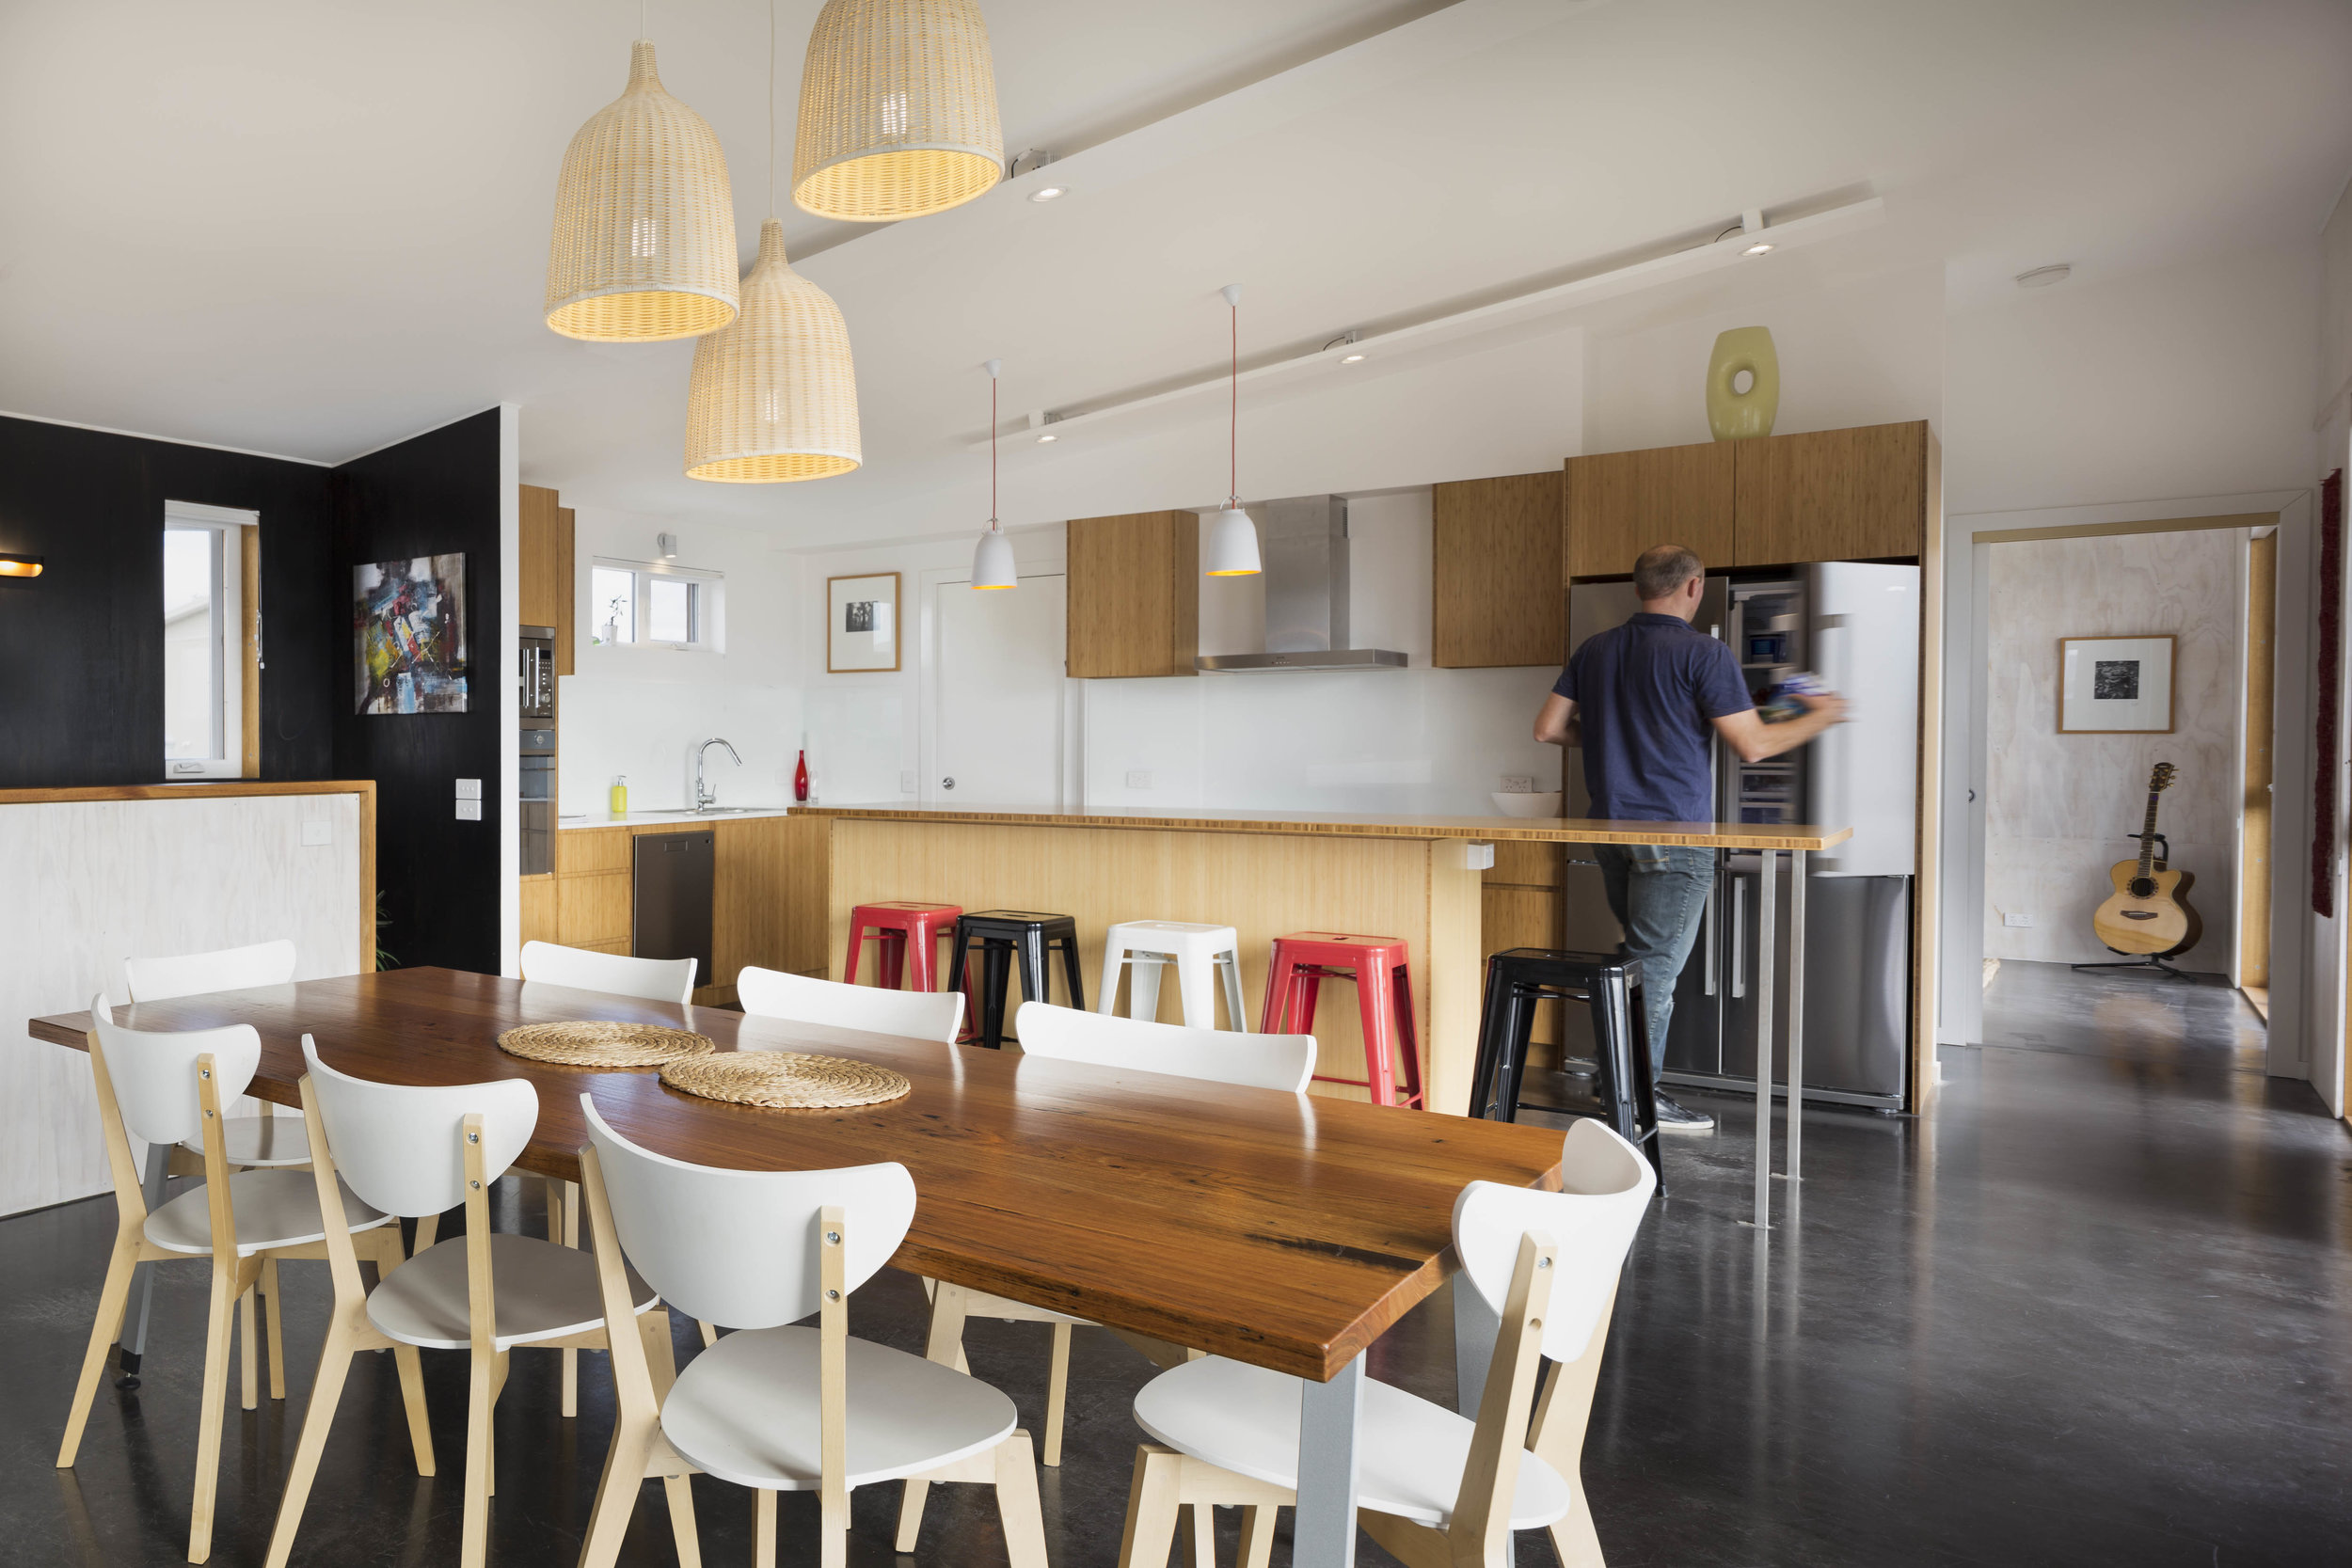 marina-mcdonald-architectural-photography-canberra-rogers-design-and-construction-kitchen-dining